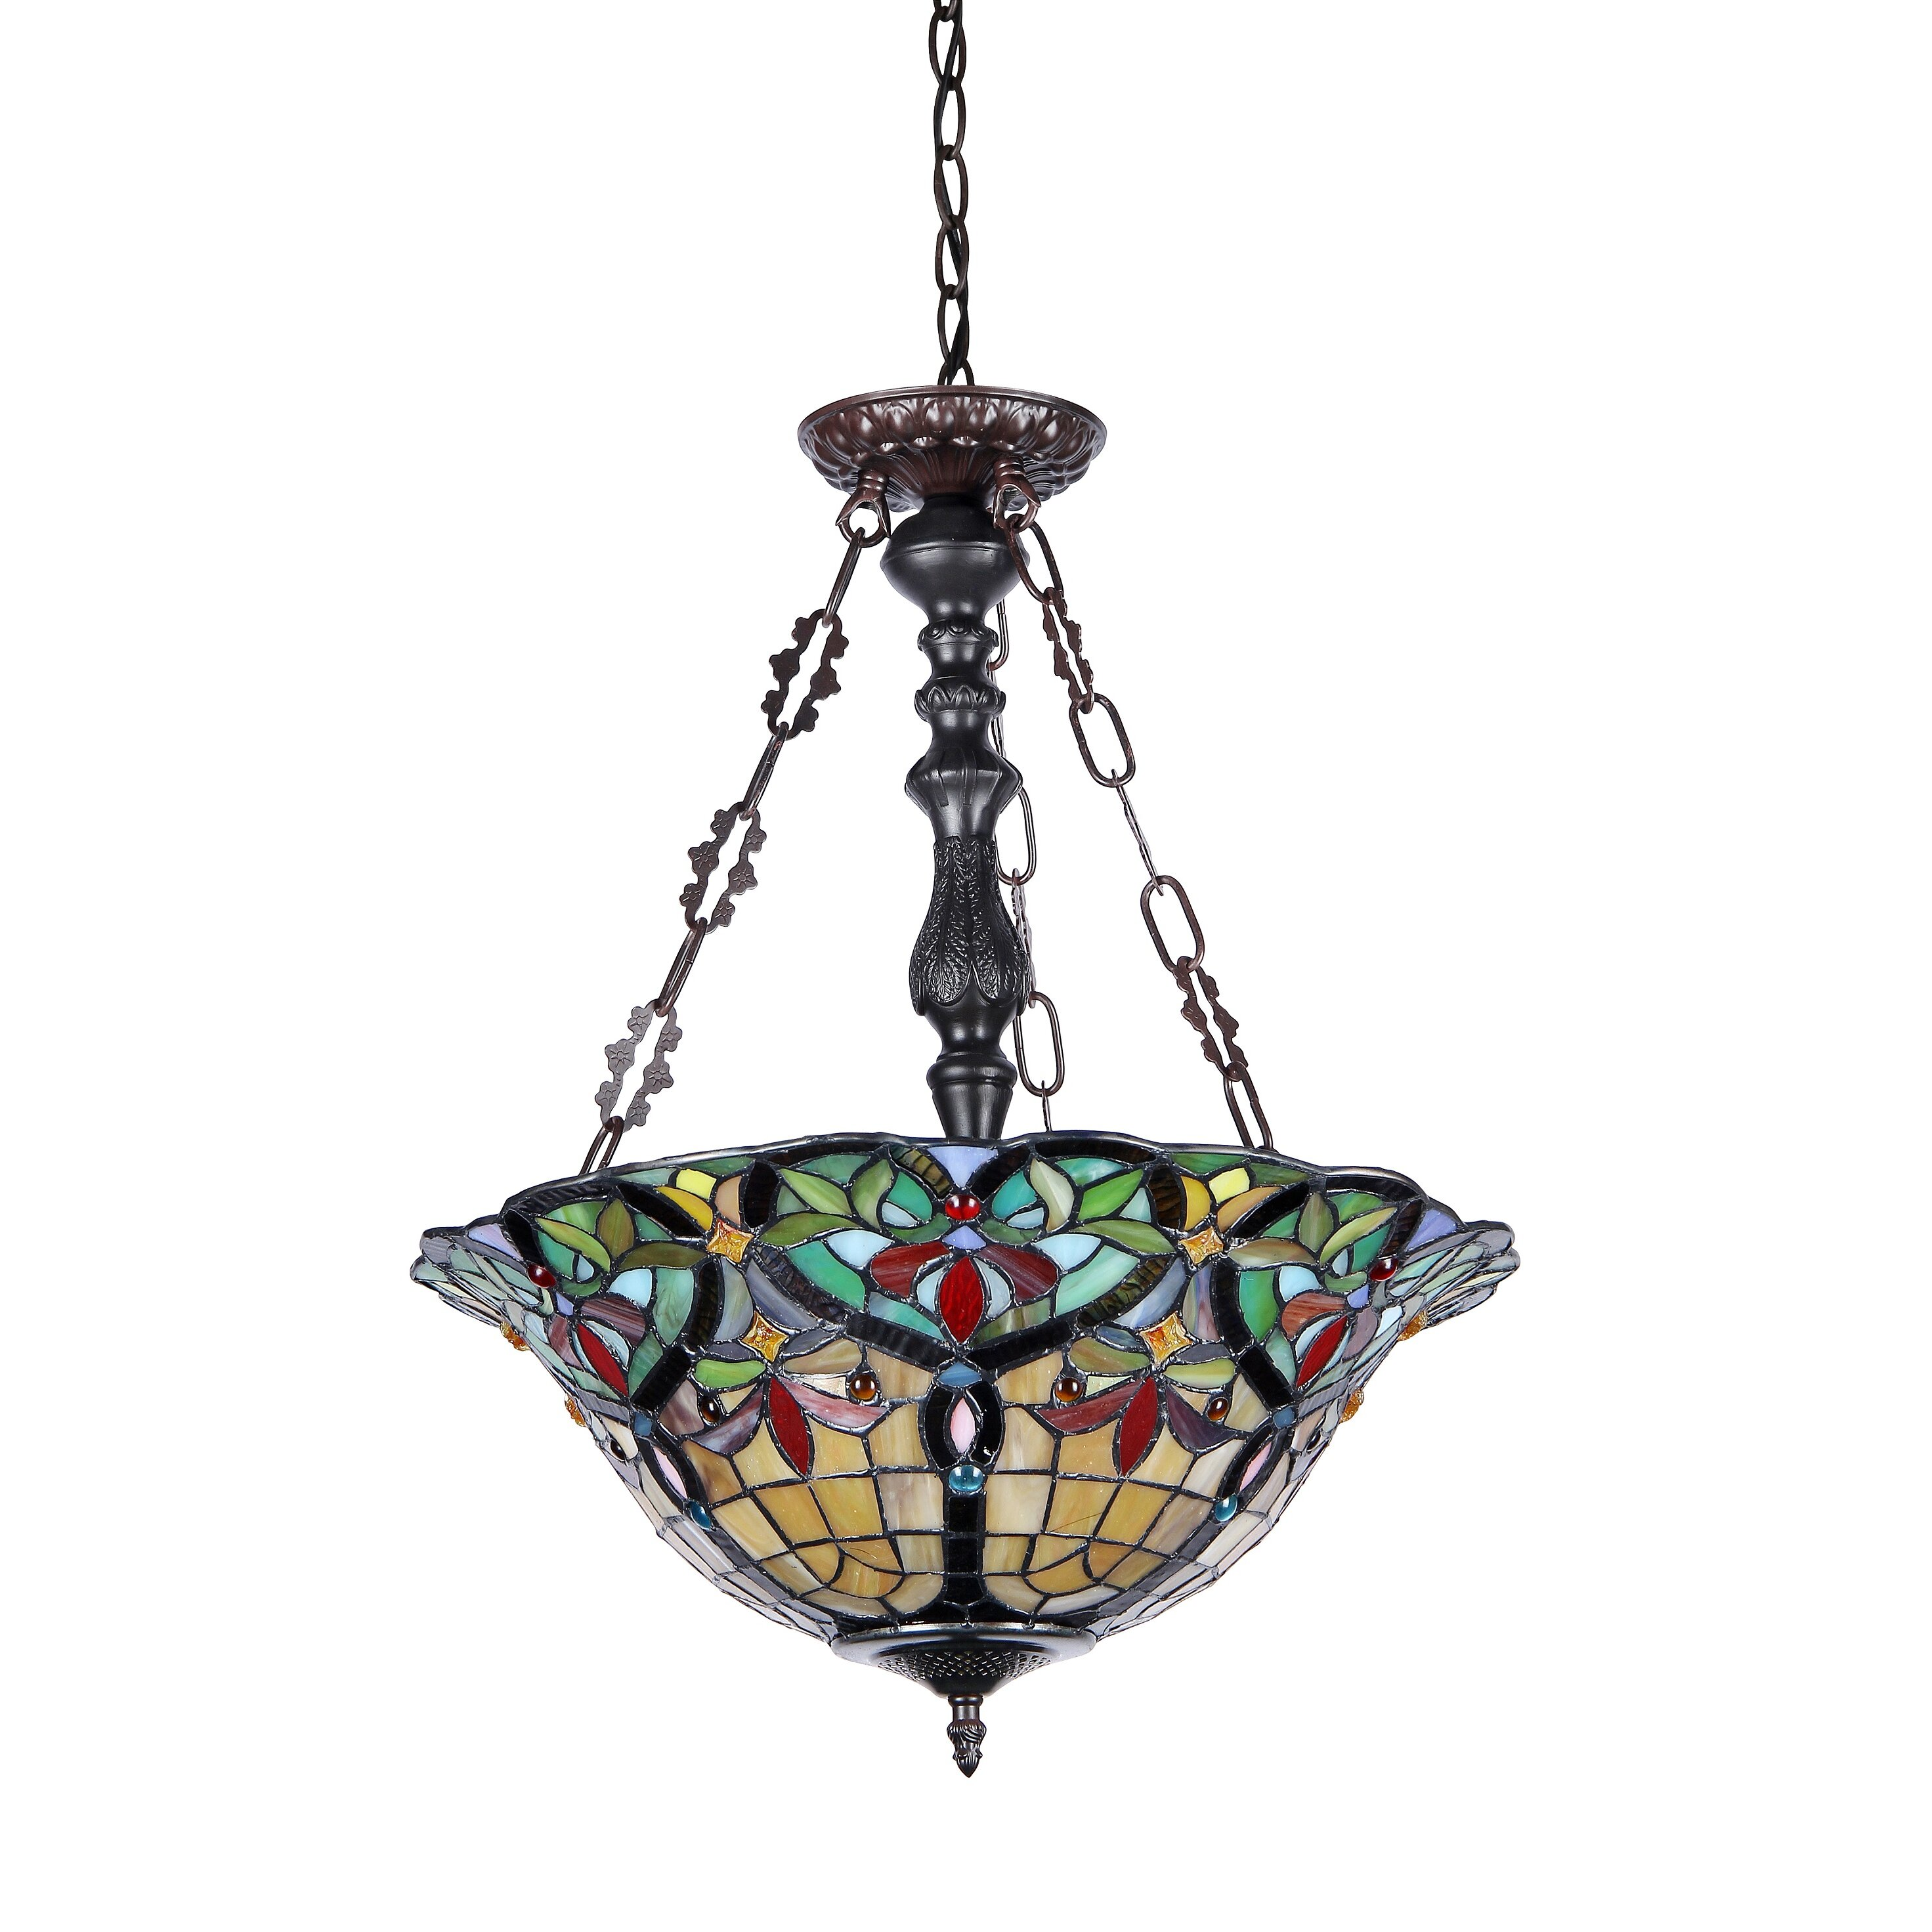 Chloe Lighting Victorian 3 Light Bertram Inverted Ceiling